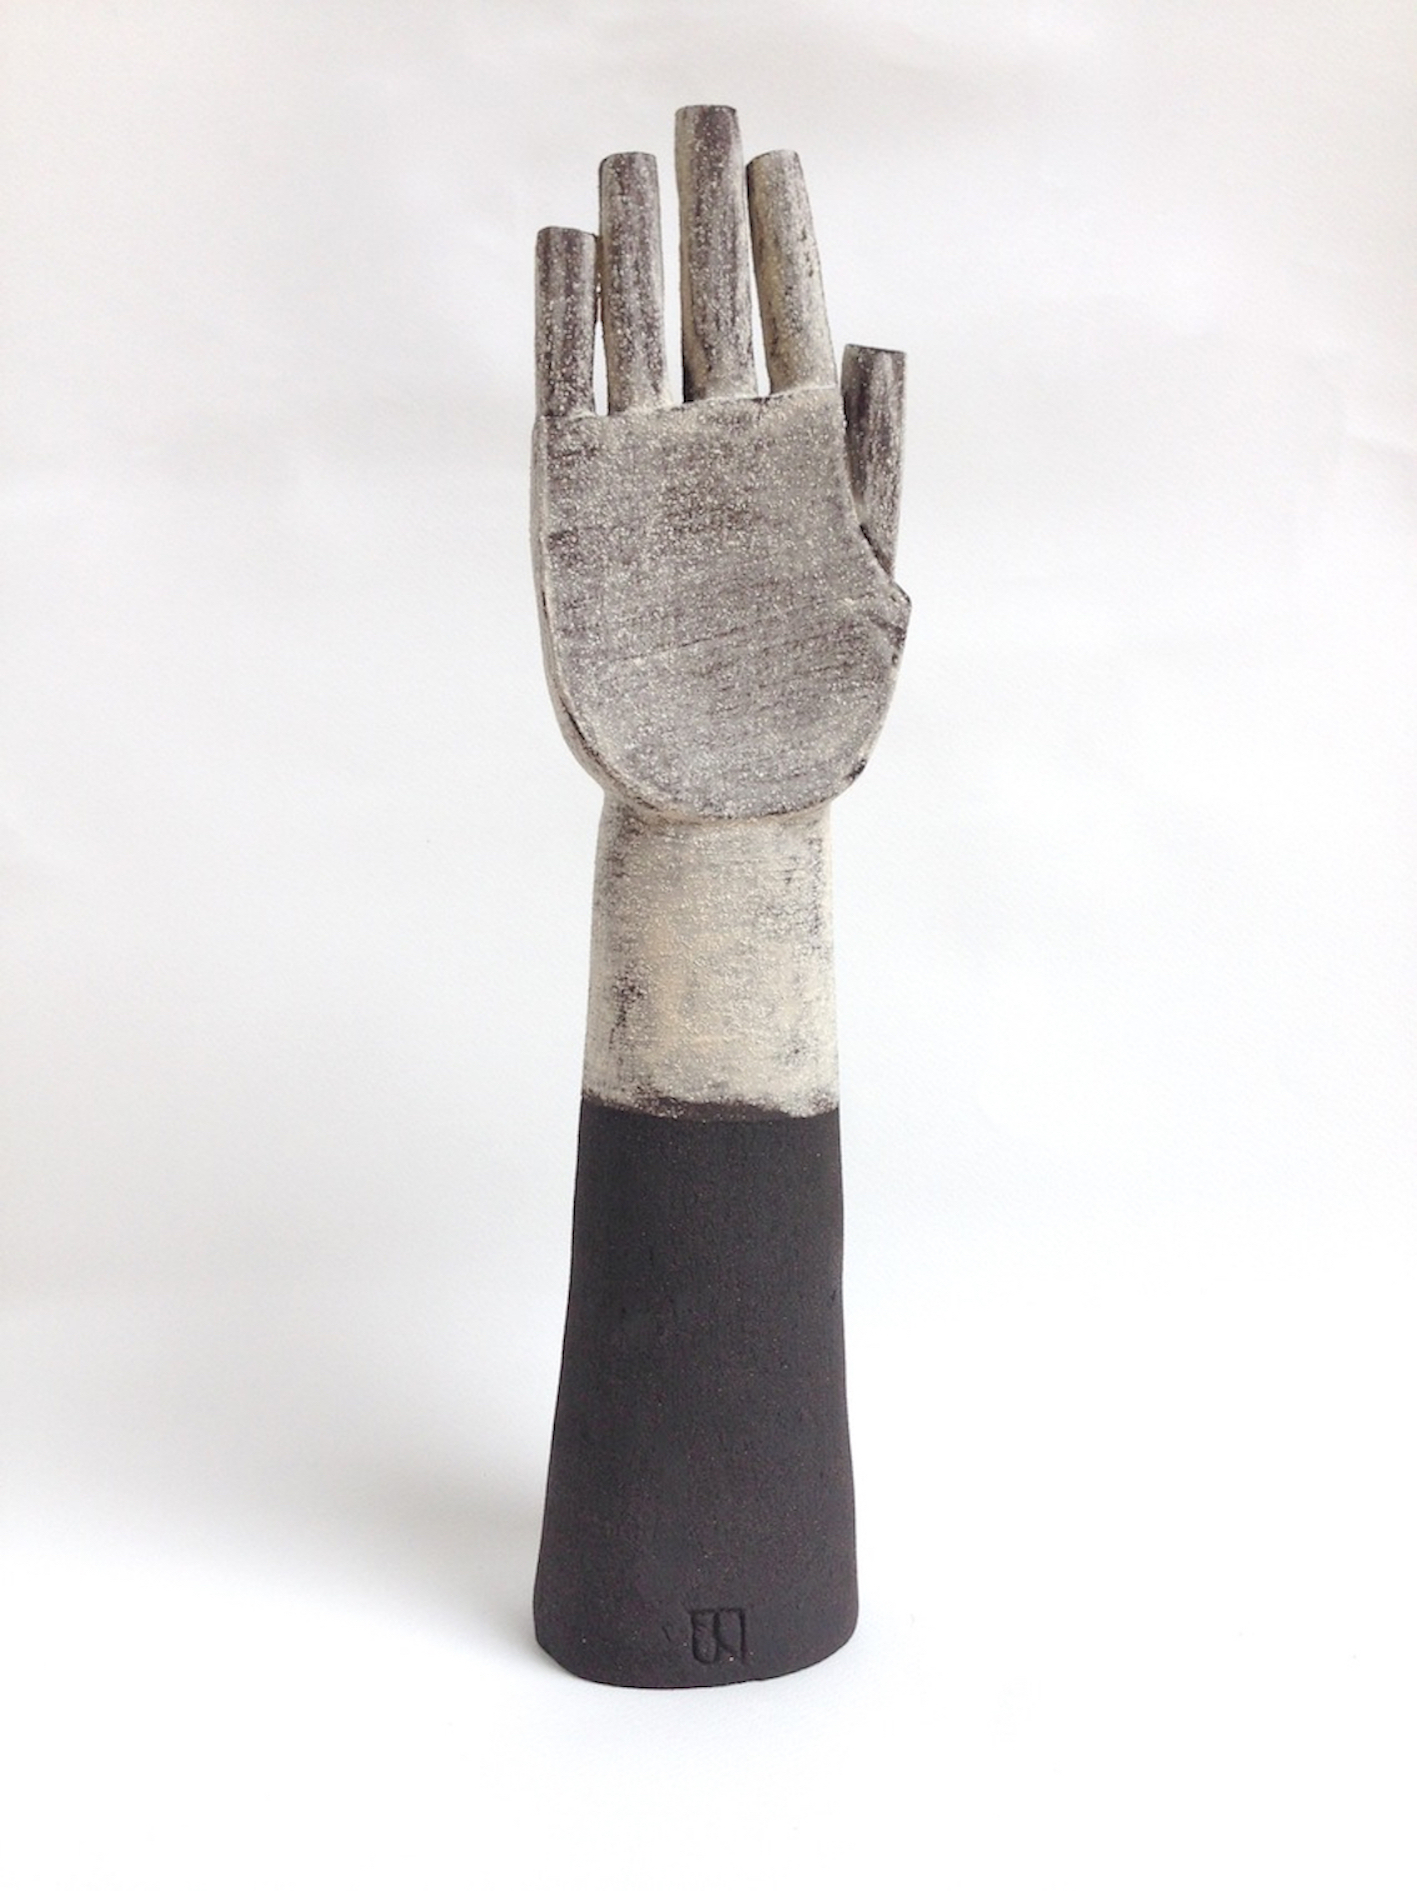 Title: White Glove Size: H 35 x W 12 x D 9 cm Medium: Black stoneware